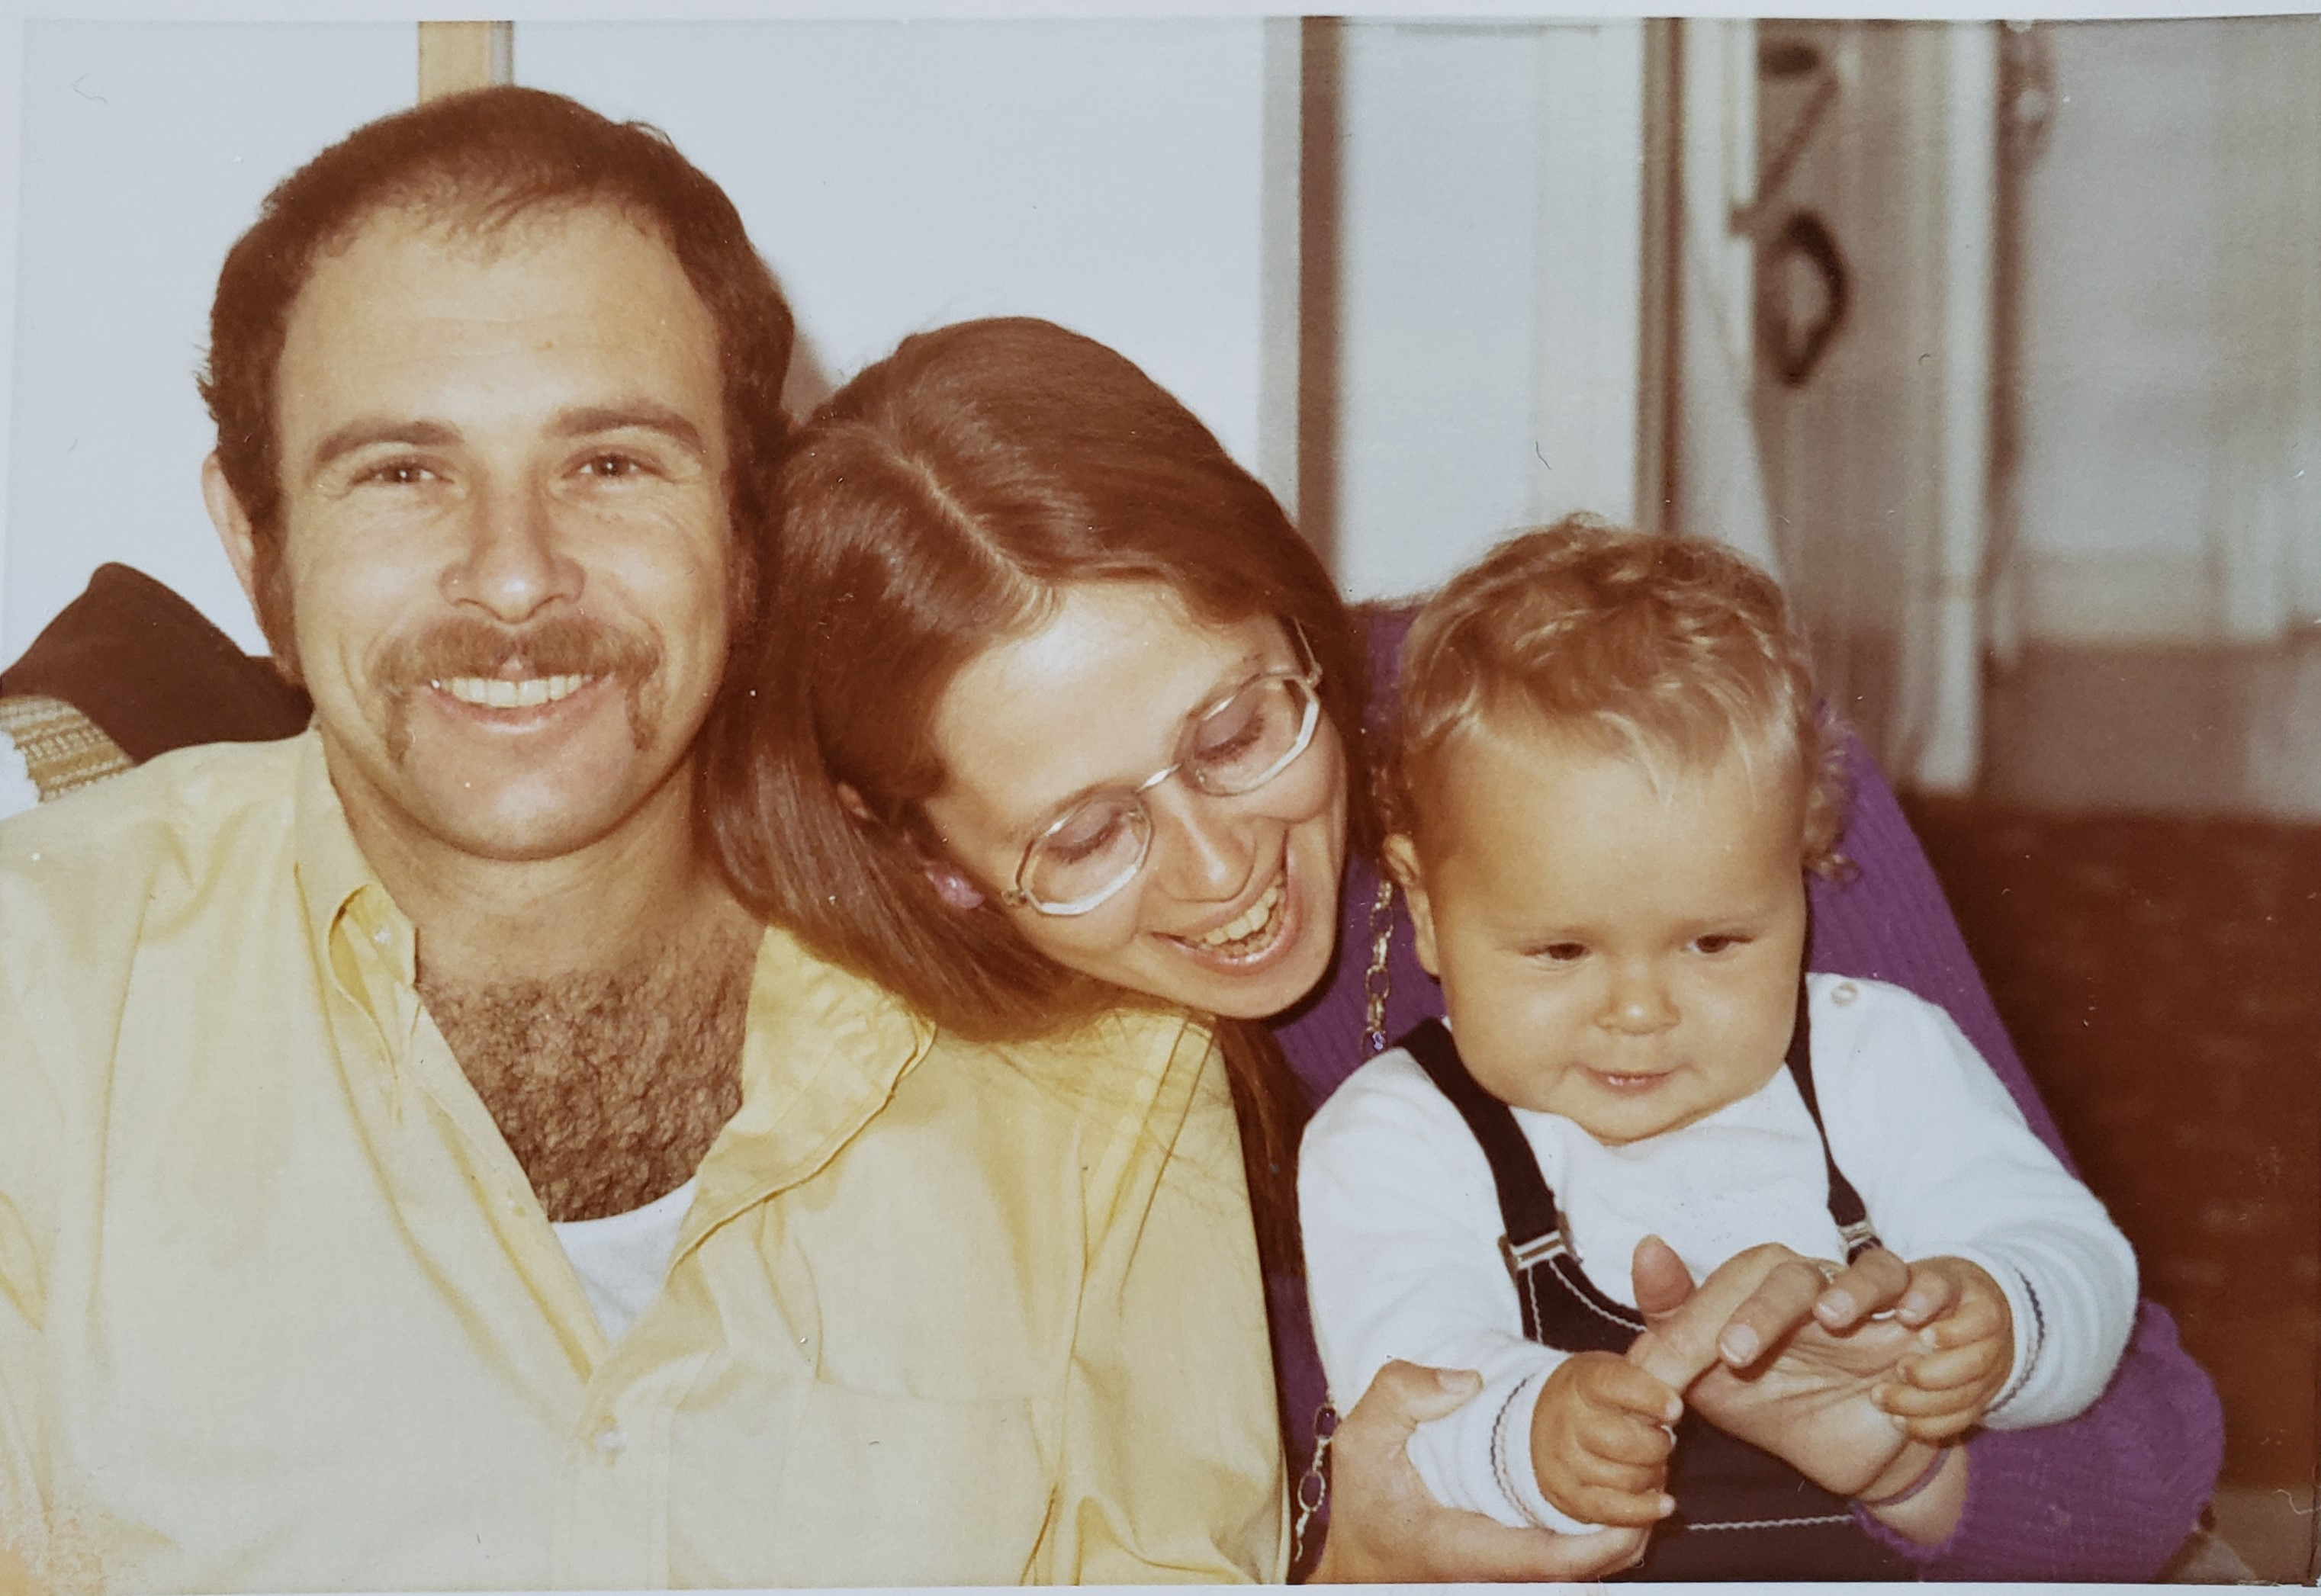 My parents and me. I have no memories of us as a family.